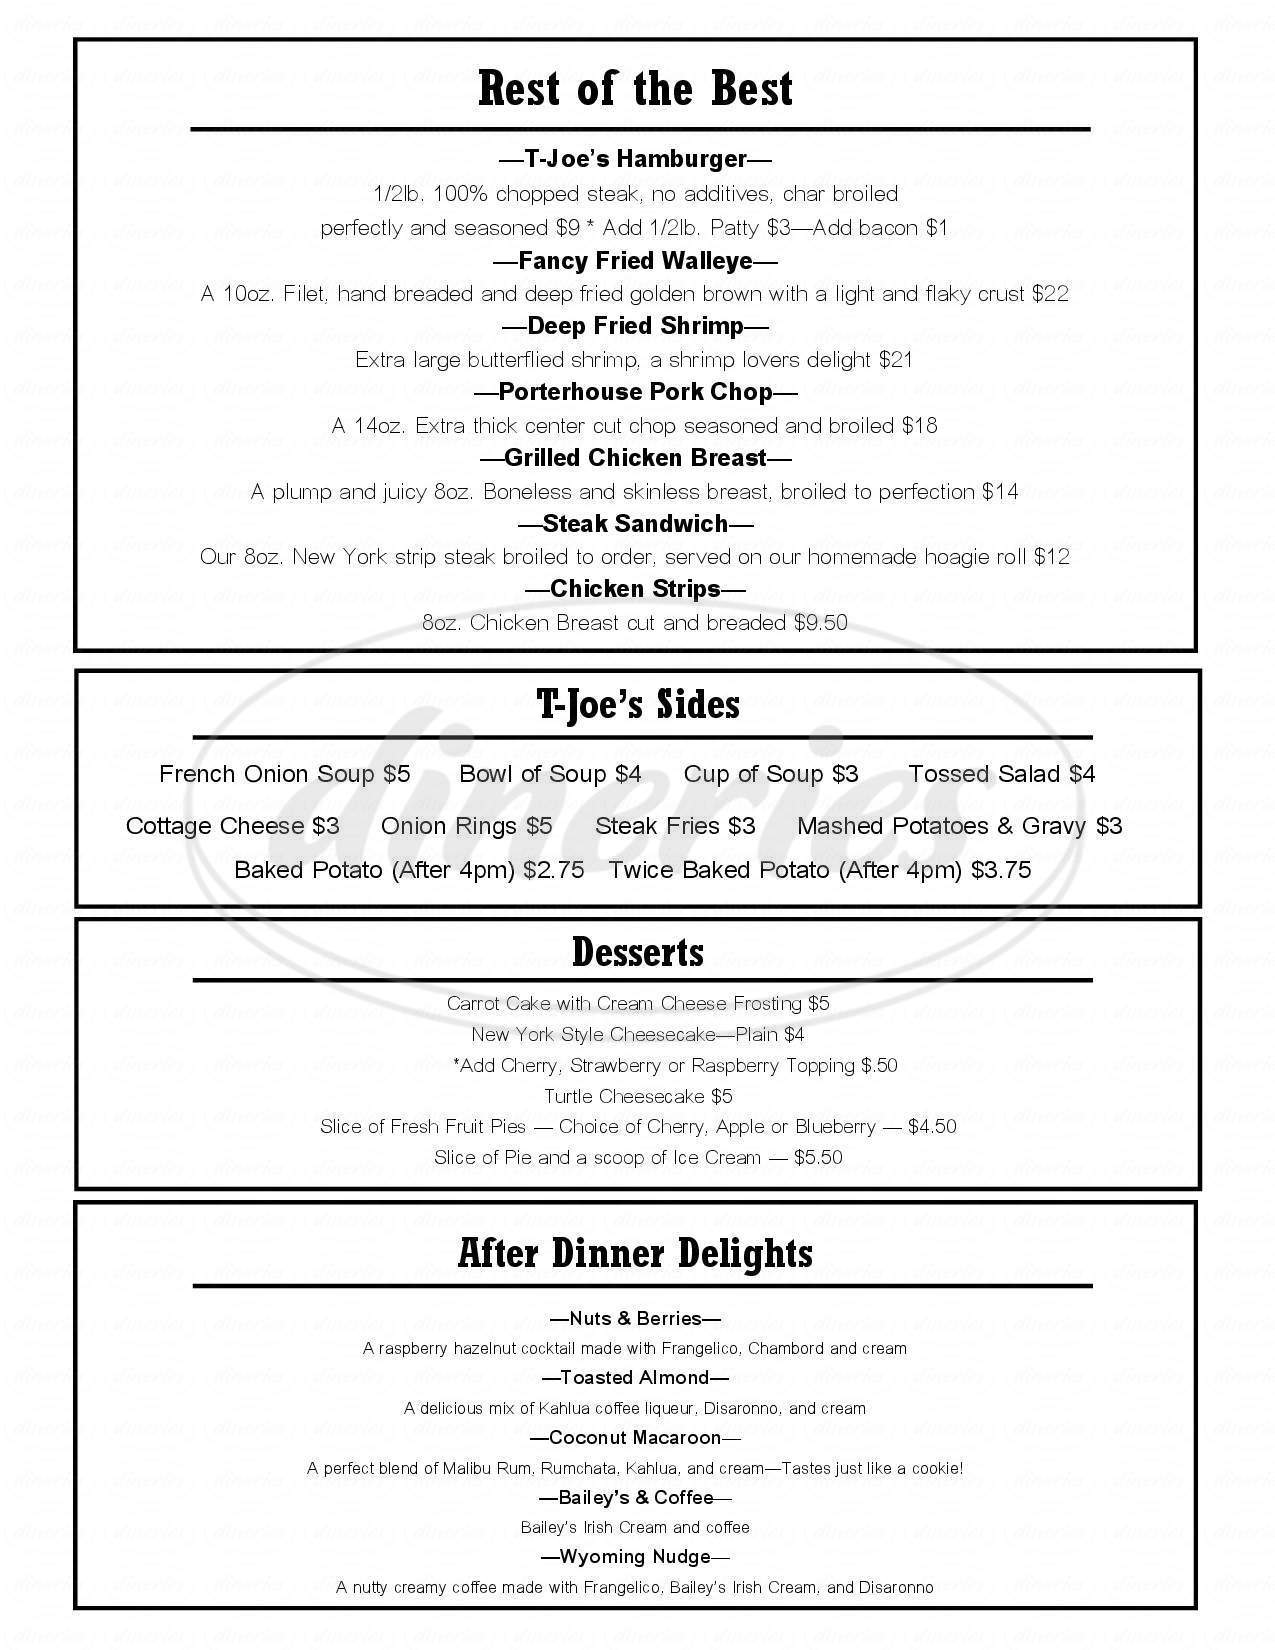 menu for T-Joe's Steakhouse & Saloon